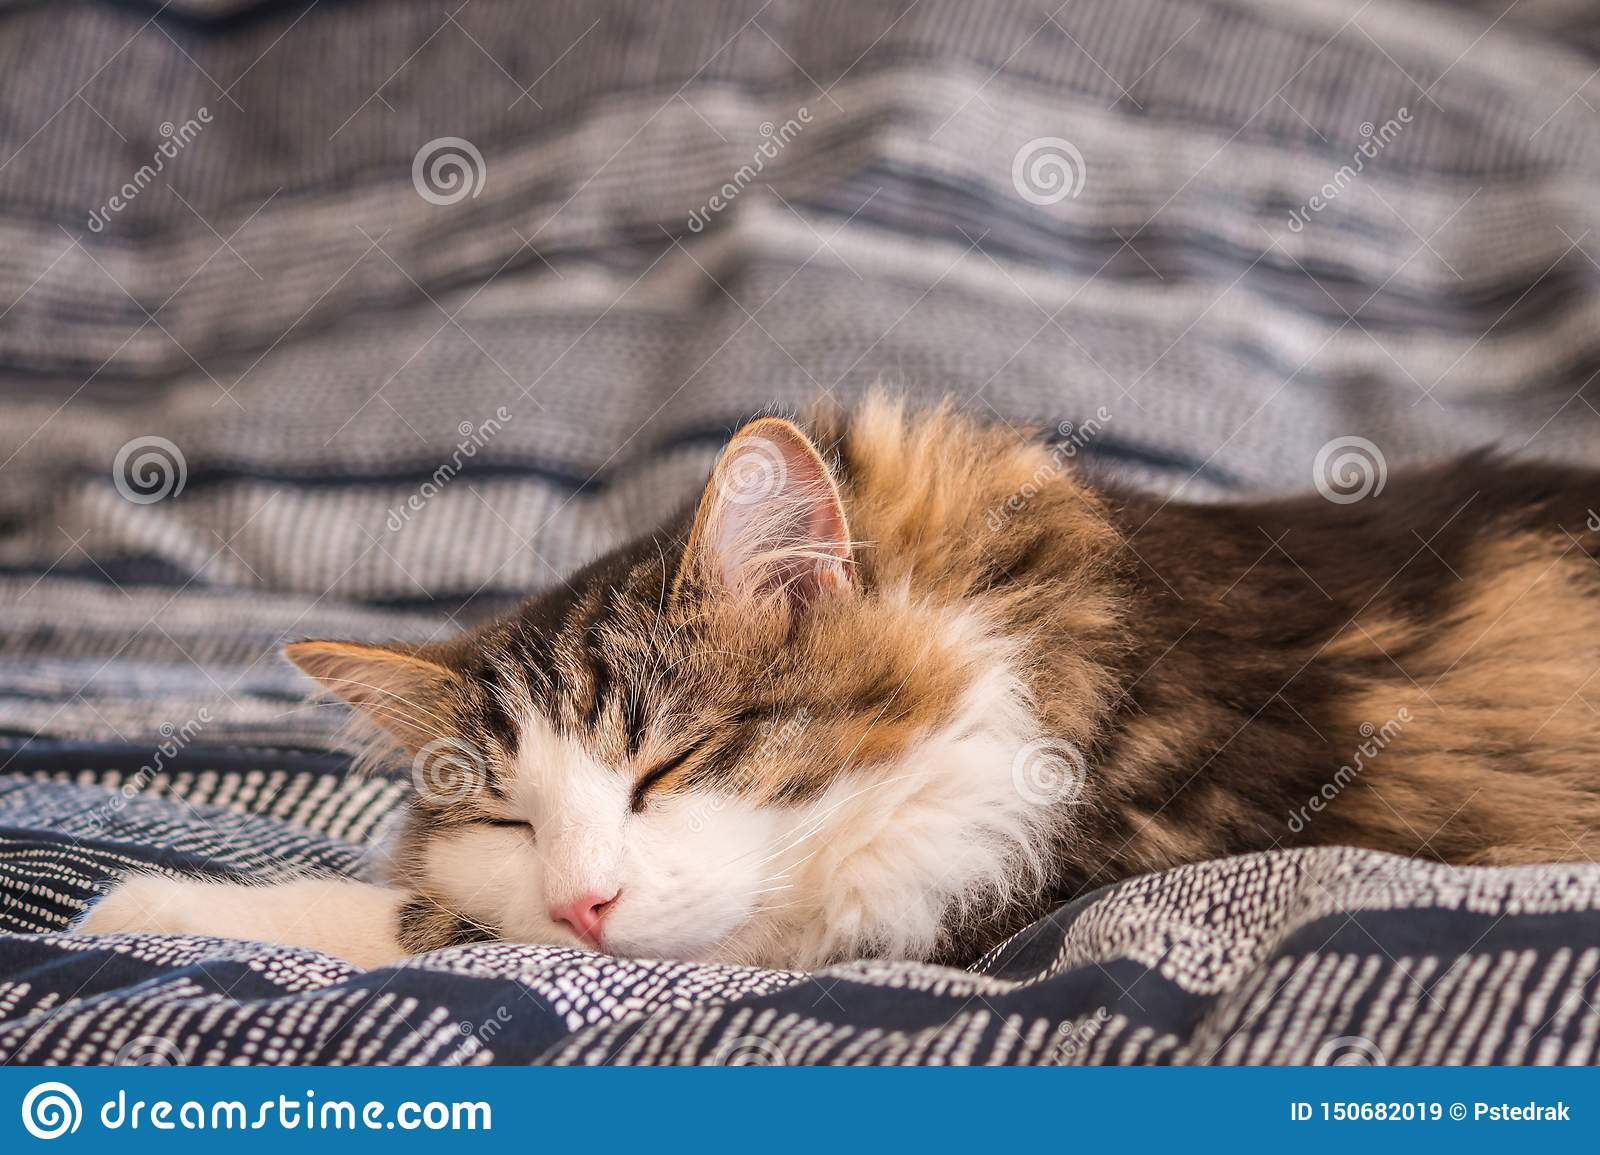 Cute tabby cat sleeping on bed with blurred background and copy space above